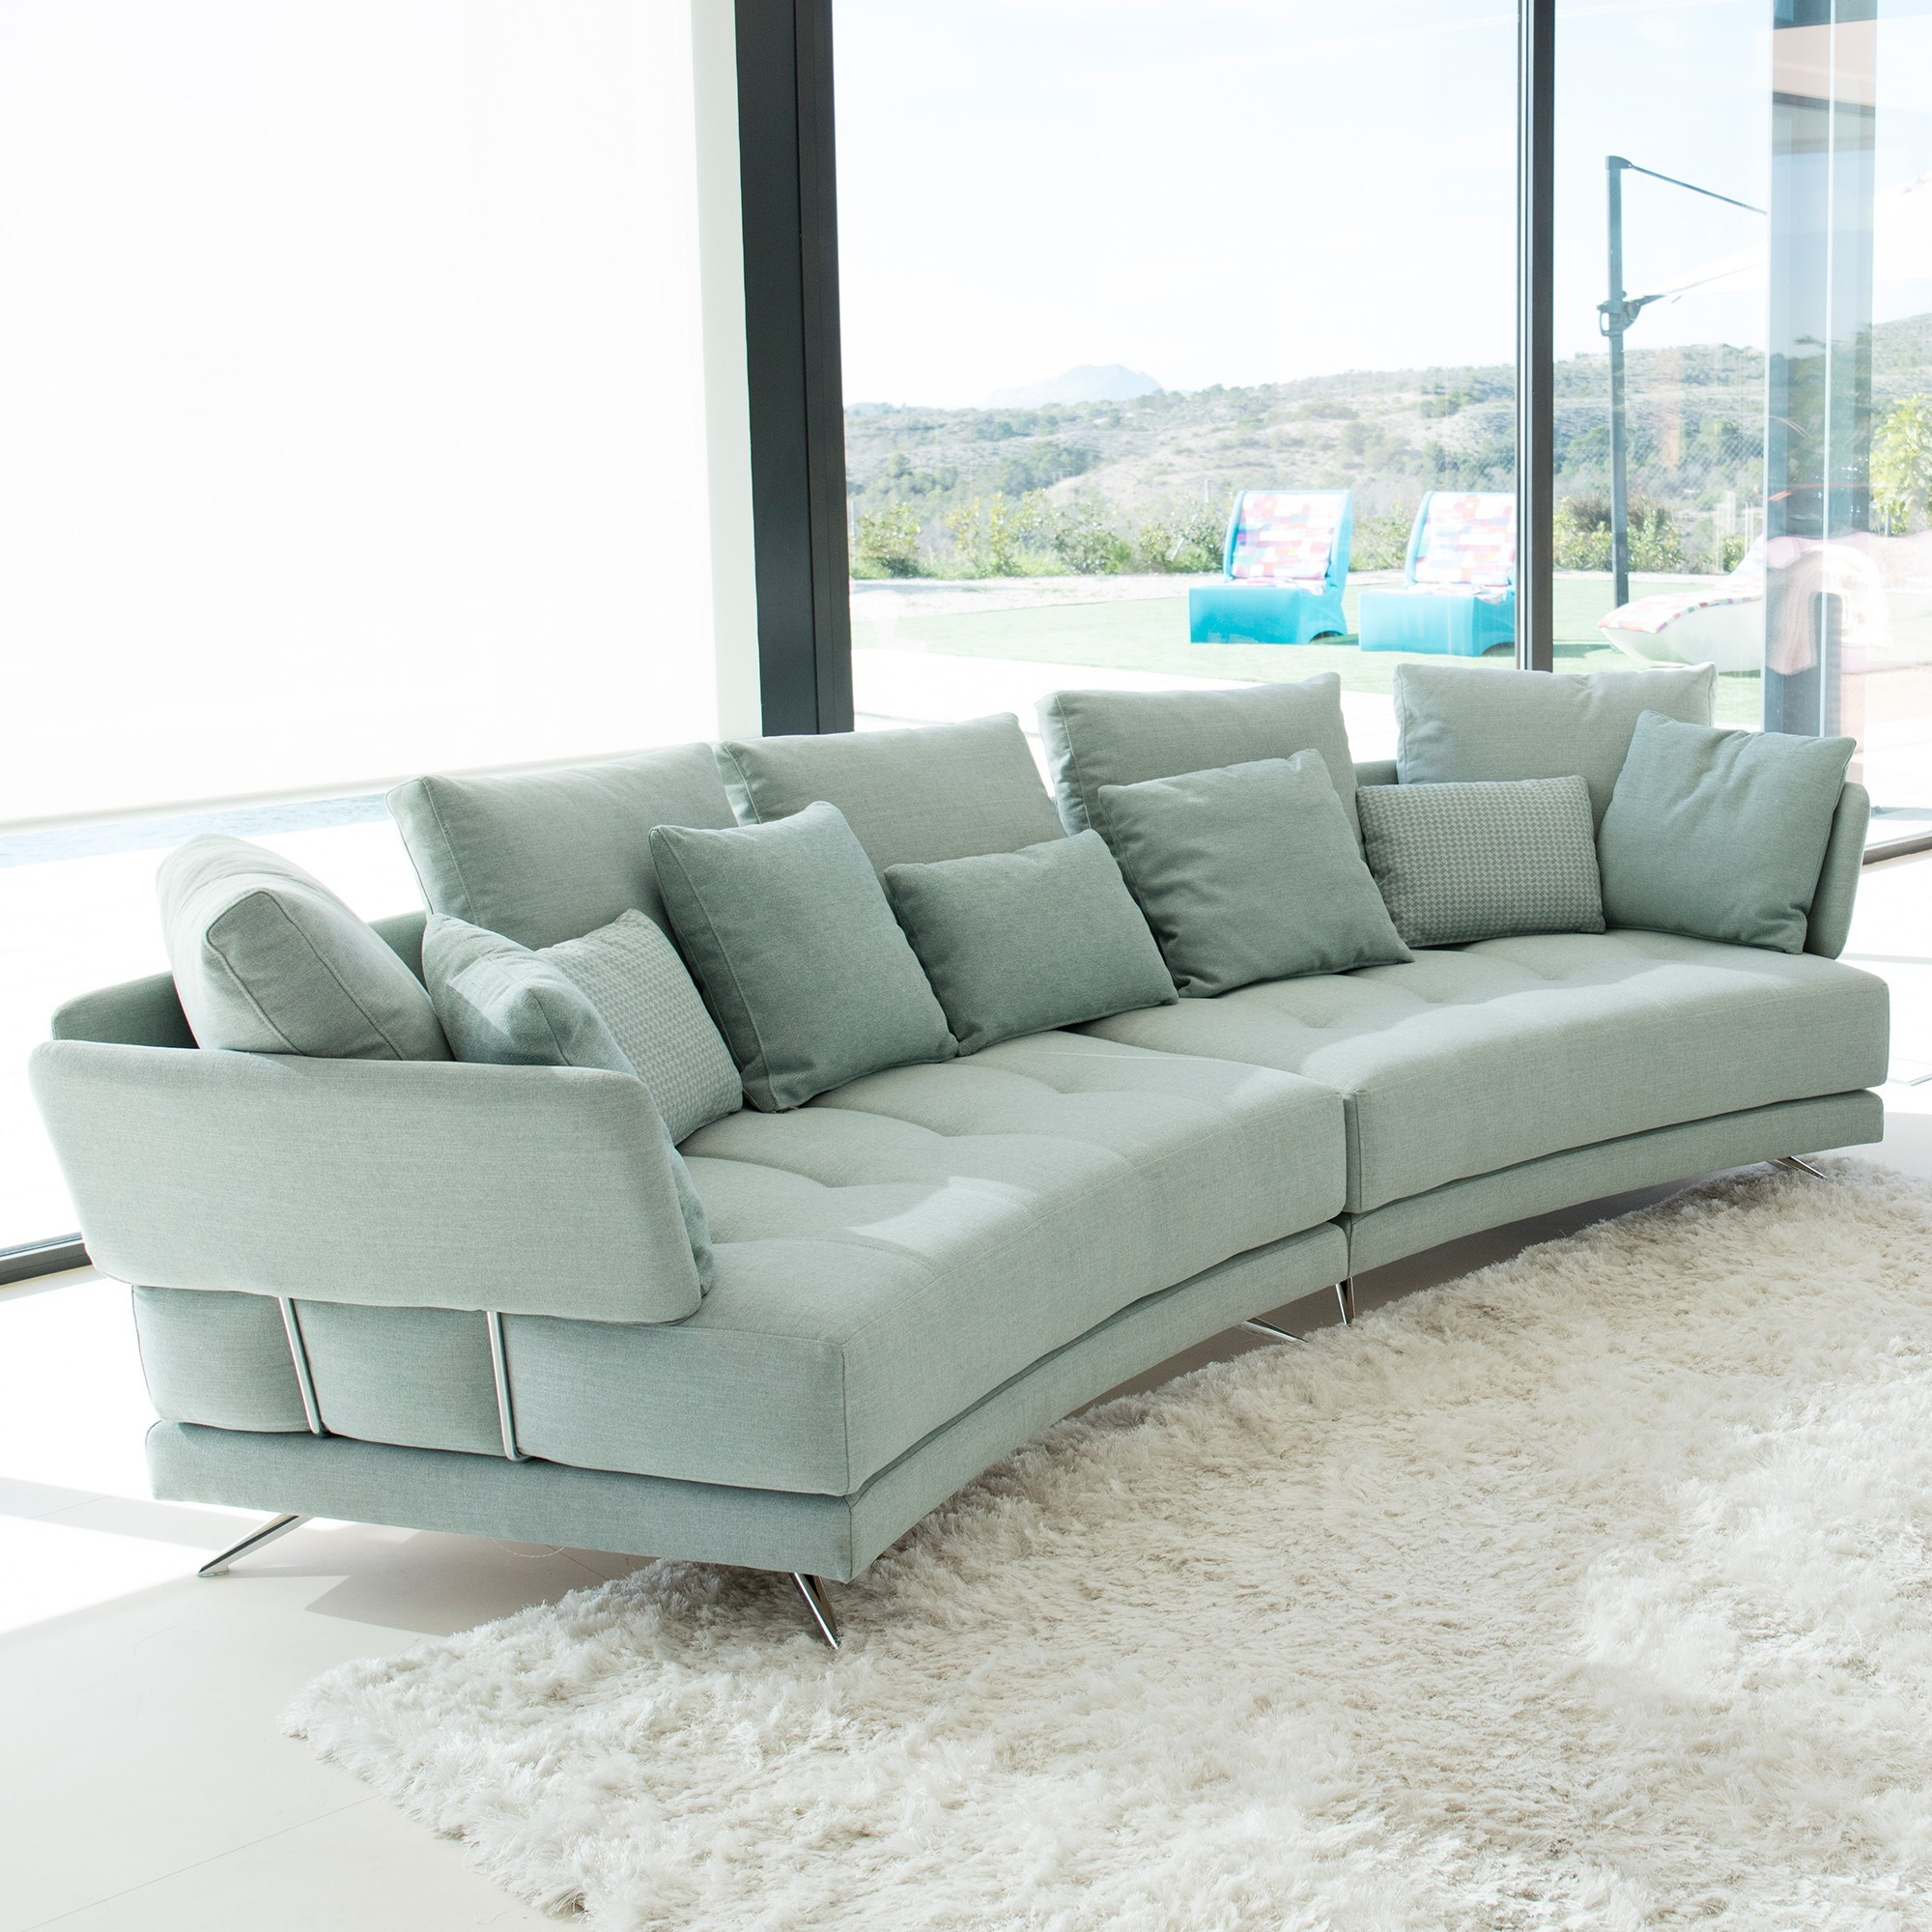 Curved sofa uk for Sofas contemporaneos